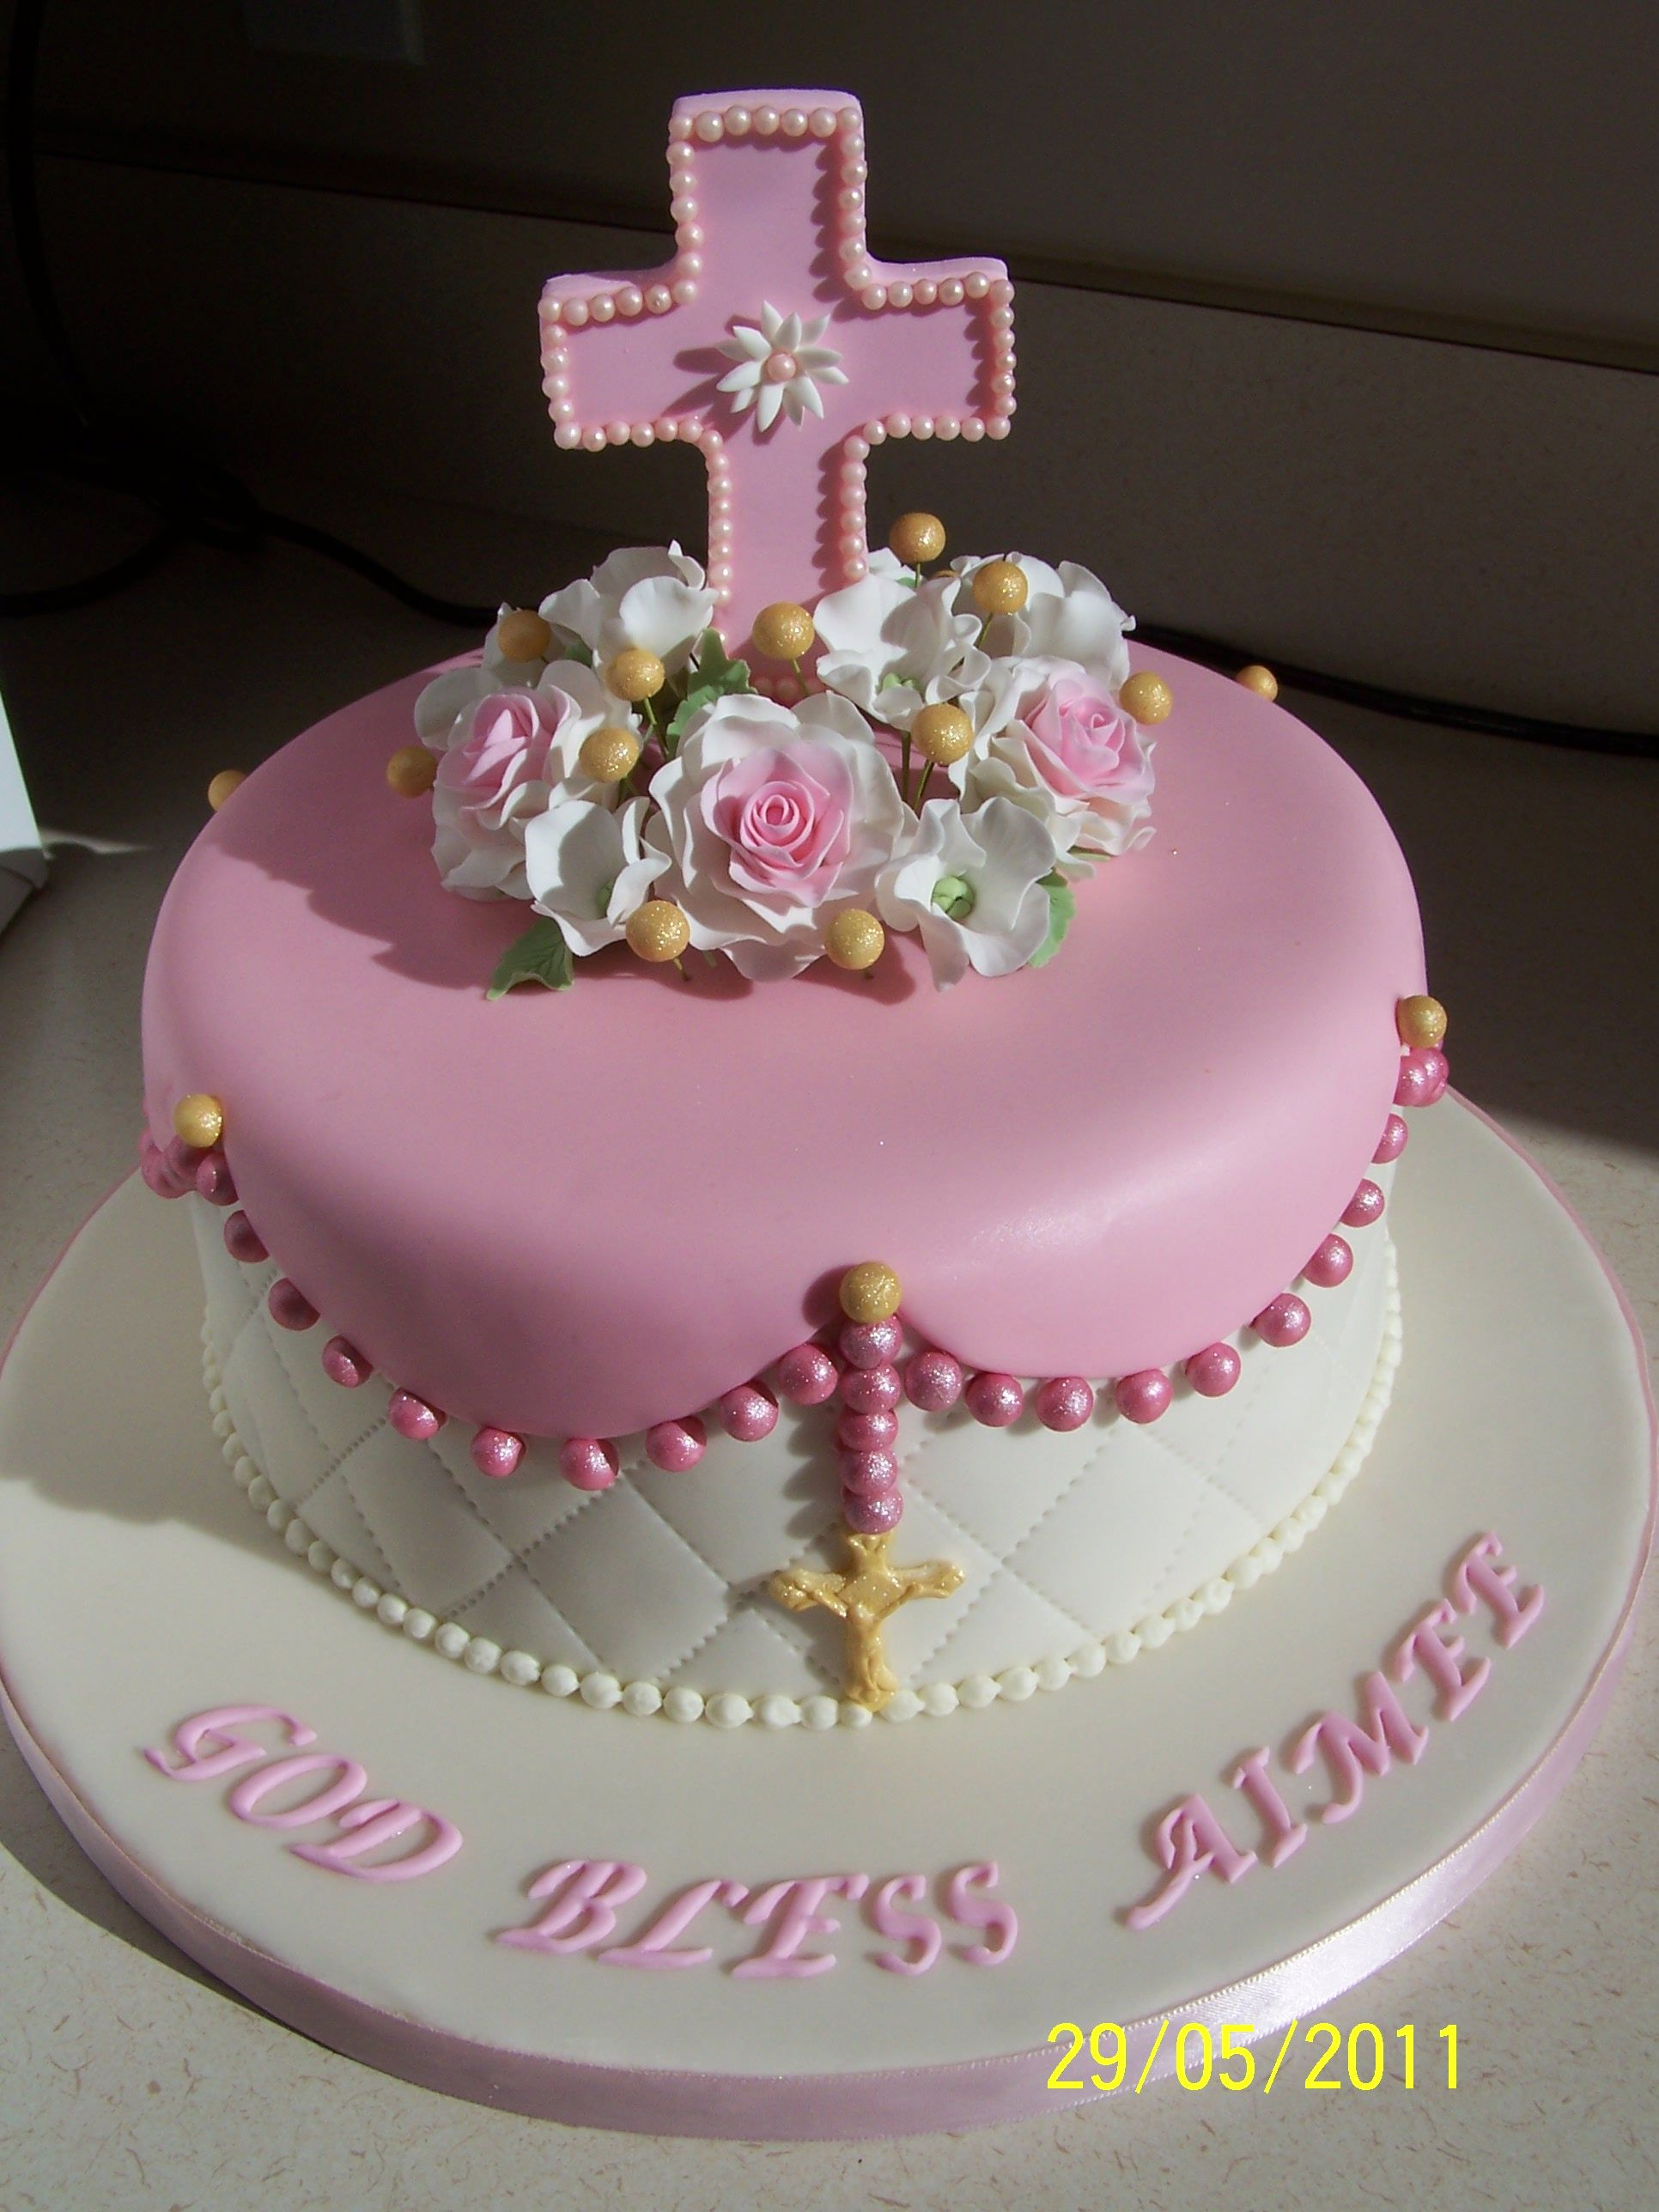 Aimee's First Communion - 8 inch chocolate cake, chocolate mousse filling and chocolate buttercream covered in MMF with gumpaste decorations. TFL.